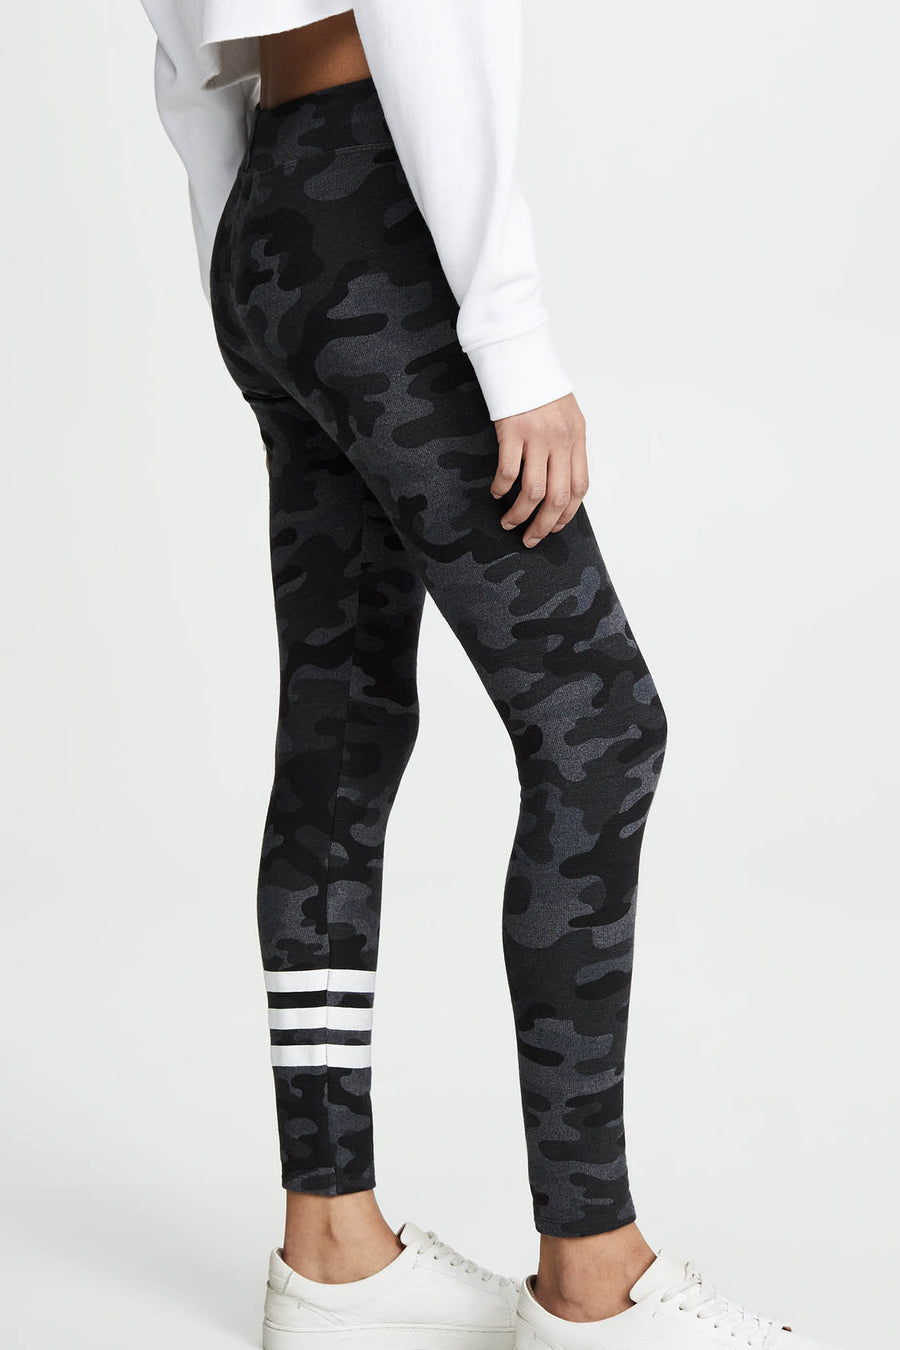 Stripe Camo Yoga Pant - Charcoal